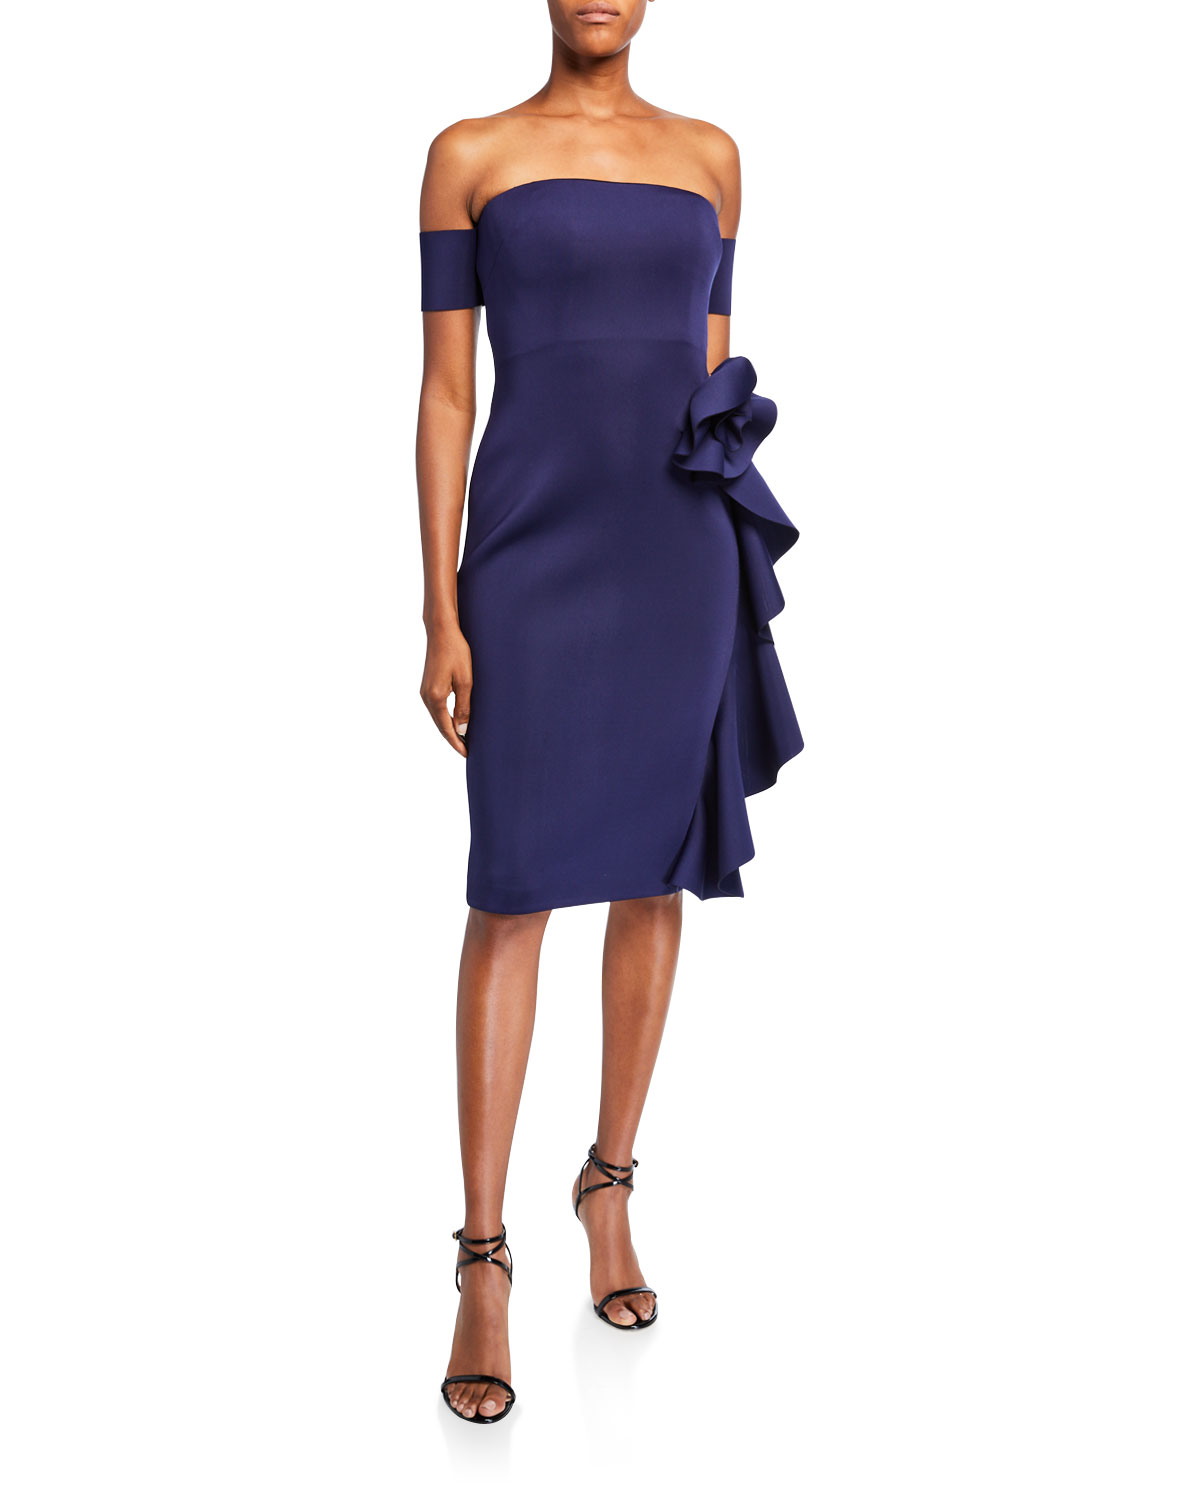 Off The Shoulder Cocktail Dress W/ Cascading Hip Flower by Badgley Mischka Collection